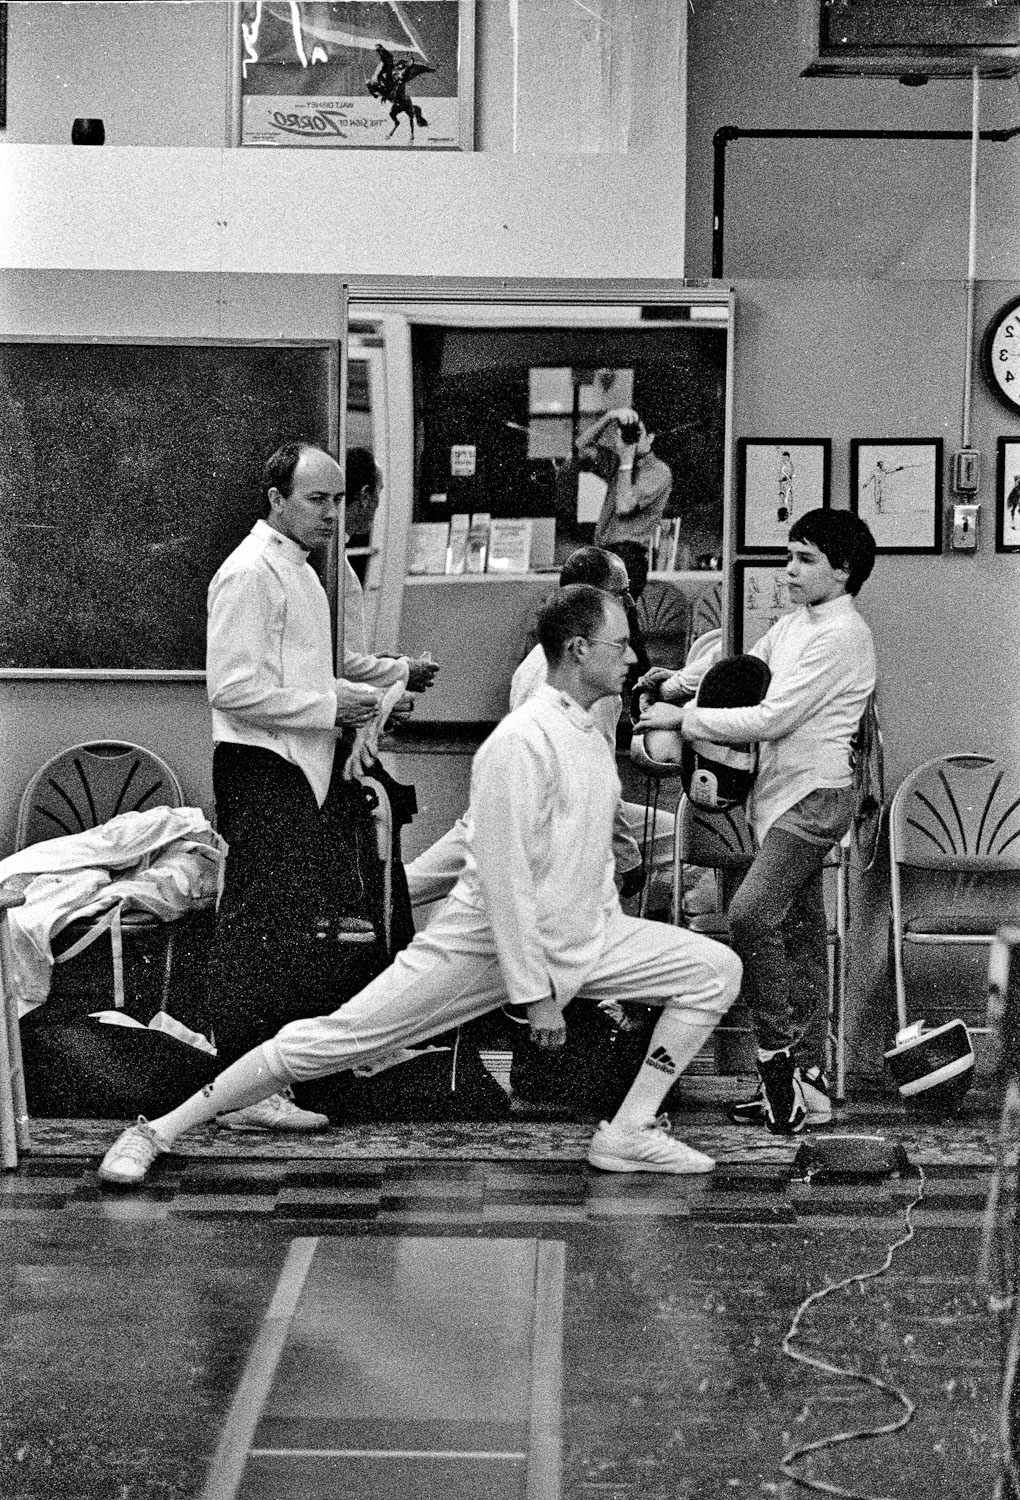 St. Johns Fencing Club member stretches